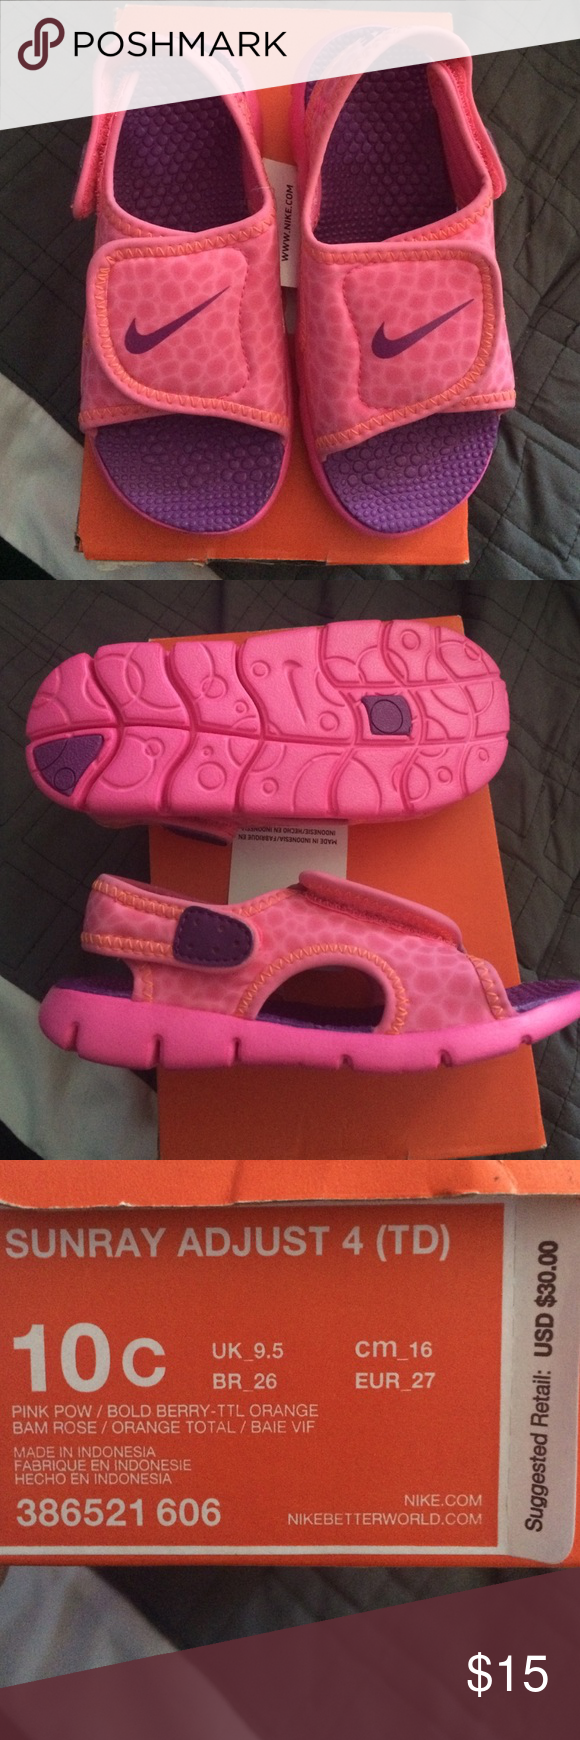 Nike sandals for toddler girls size 10C